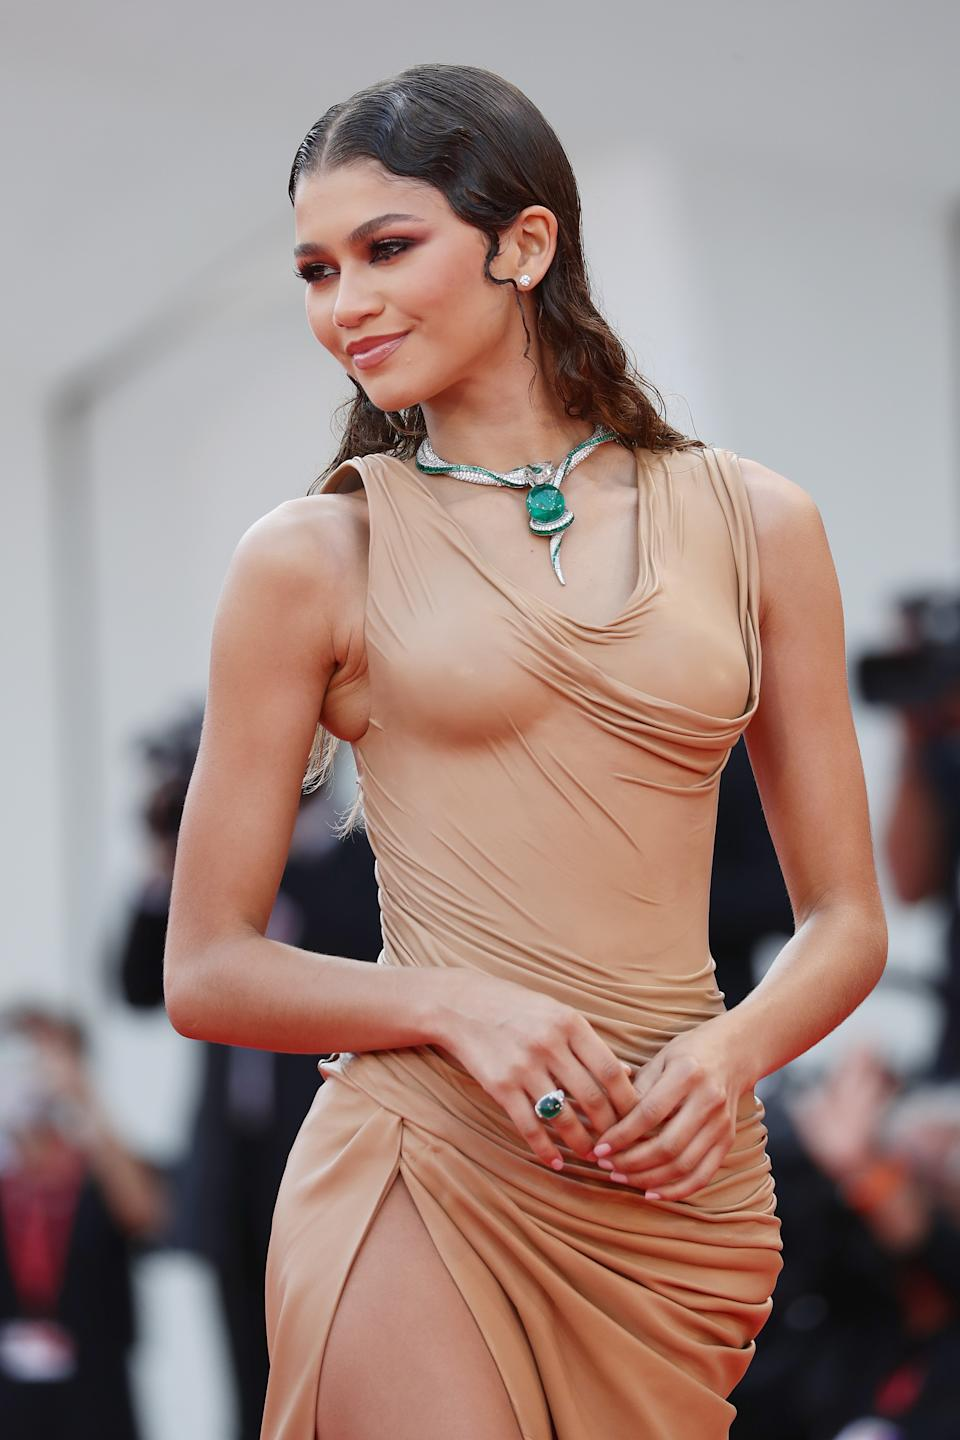 VENICE, ITALY - SEPTEMBER 03: Zendaya attends the red carpet of the movie